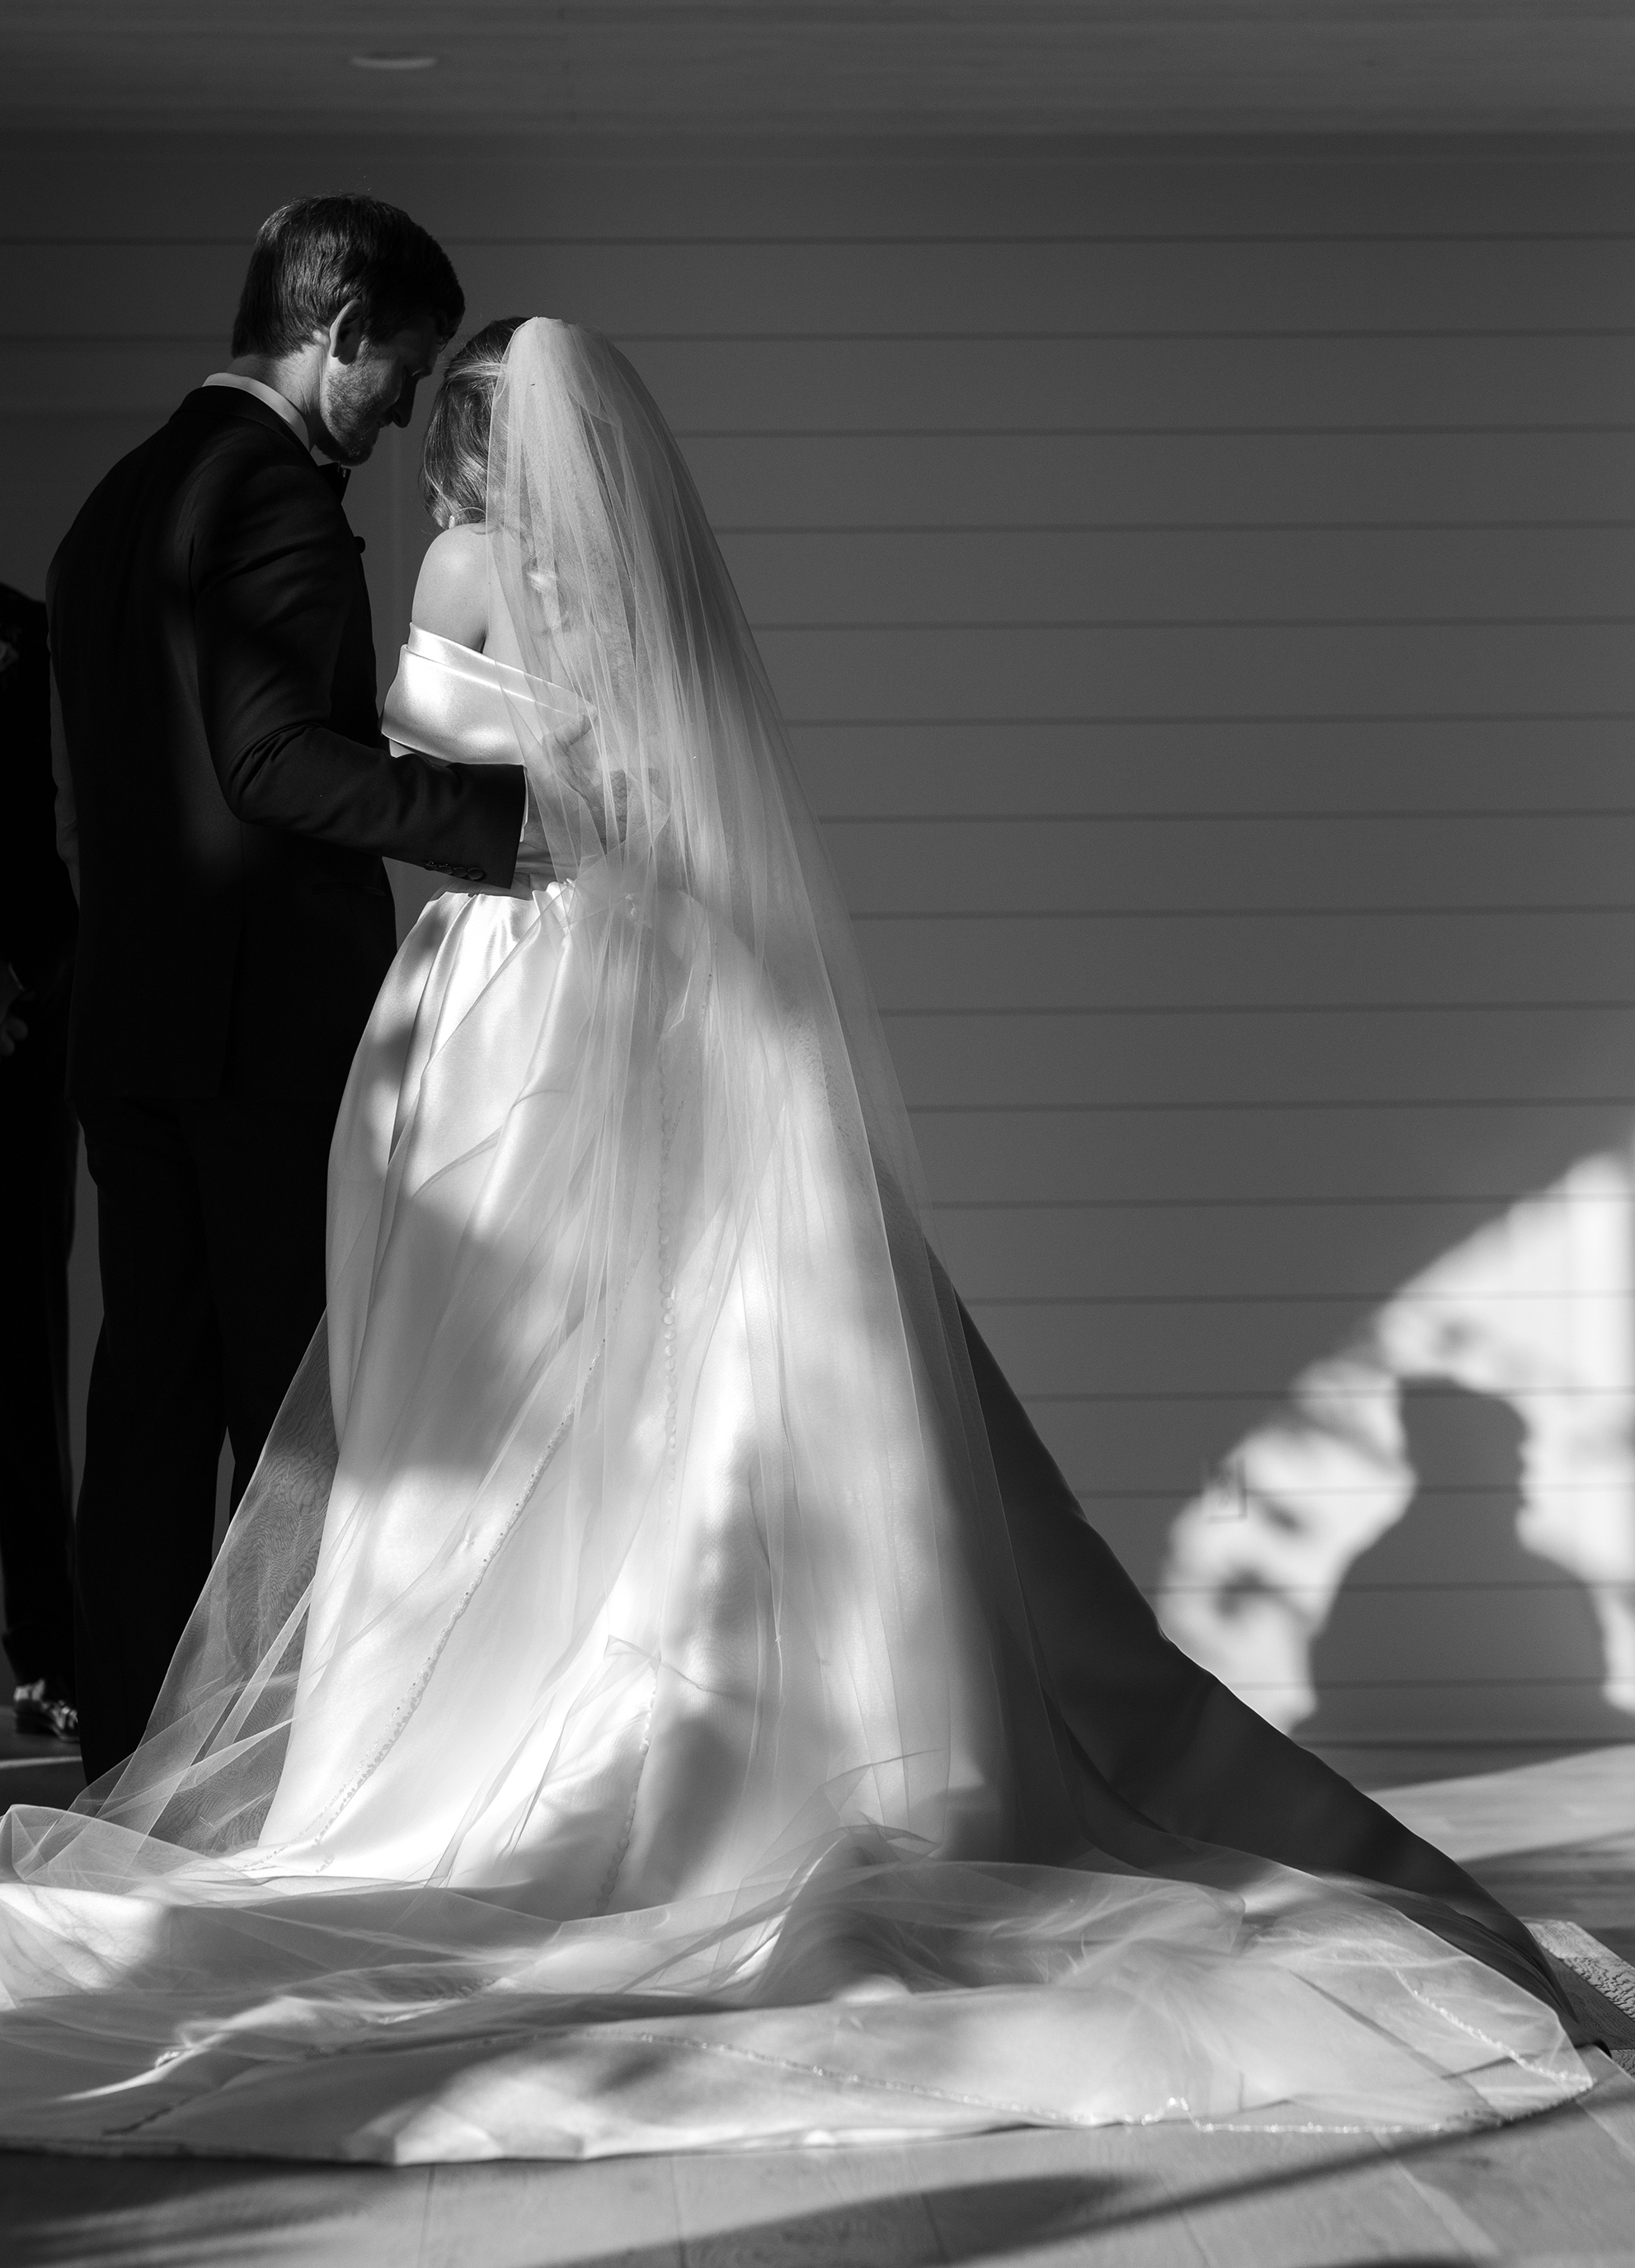 A black and white photo of the bride and groom's back with the sunlight shining onto them.